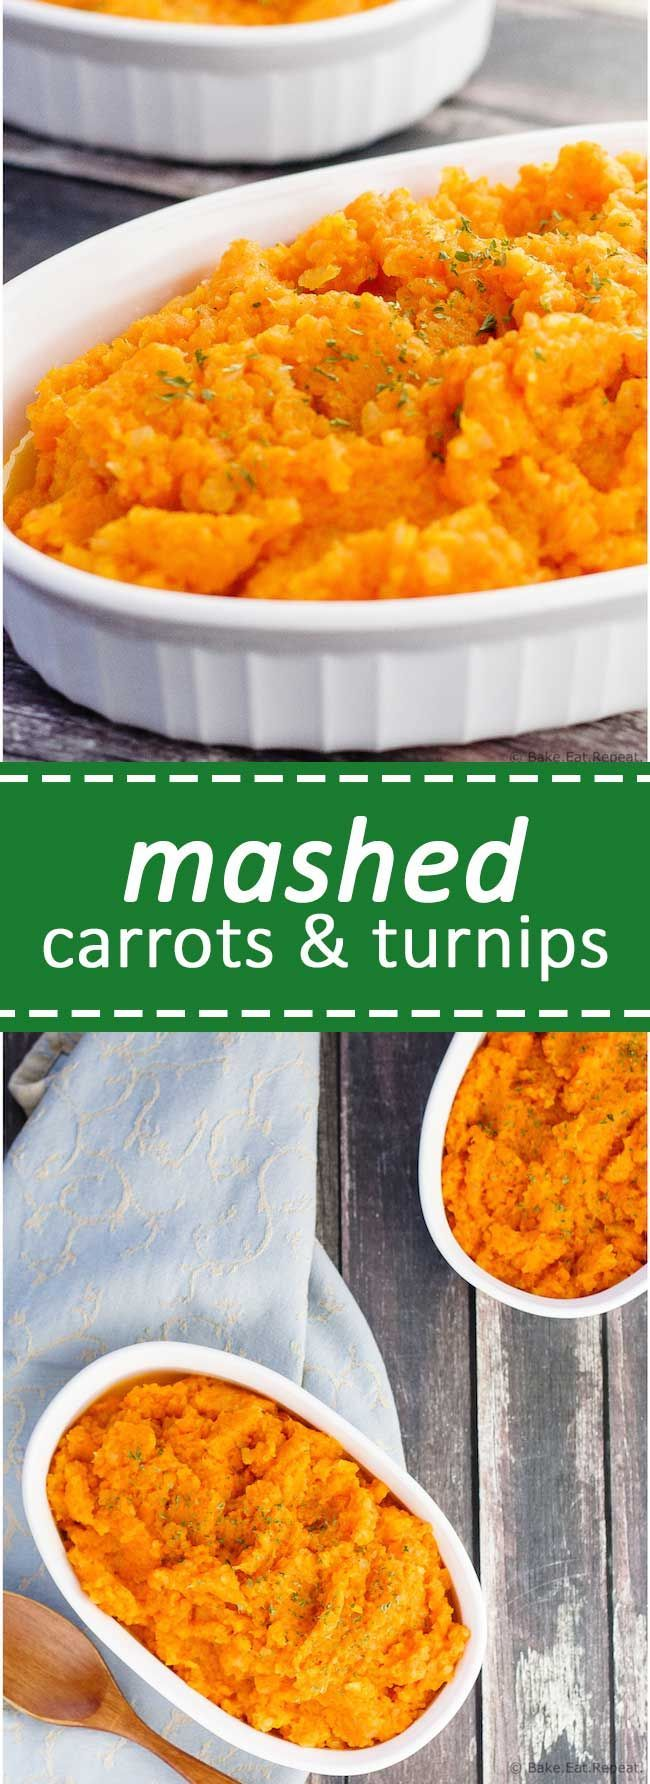 Mashed Carrots and Turnips - An easy low carb alternative to mashed potatoes for your Thanksgiving dinner, these mashed carrots and turnips are a little bit sweet and oh so tasty!